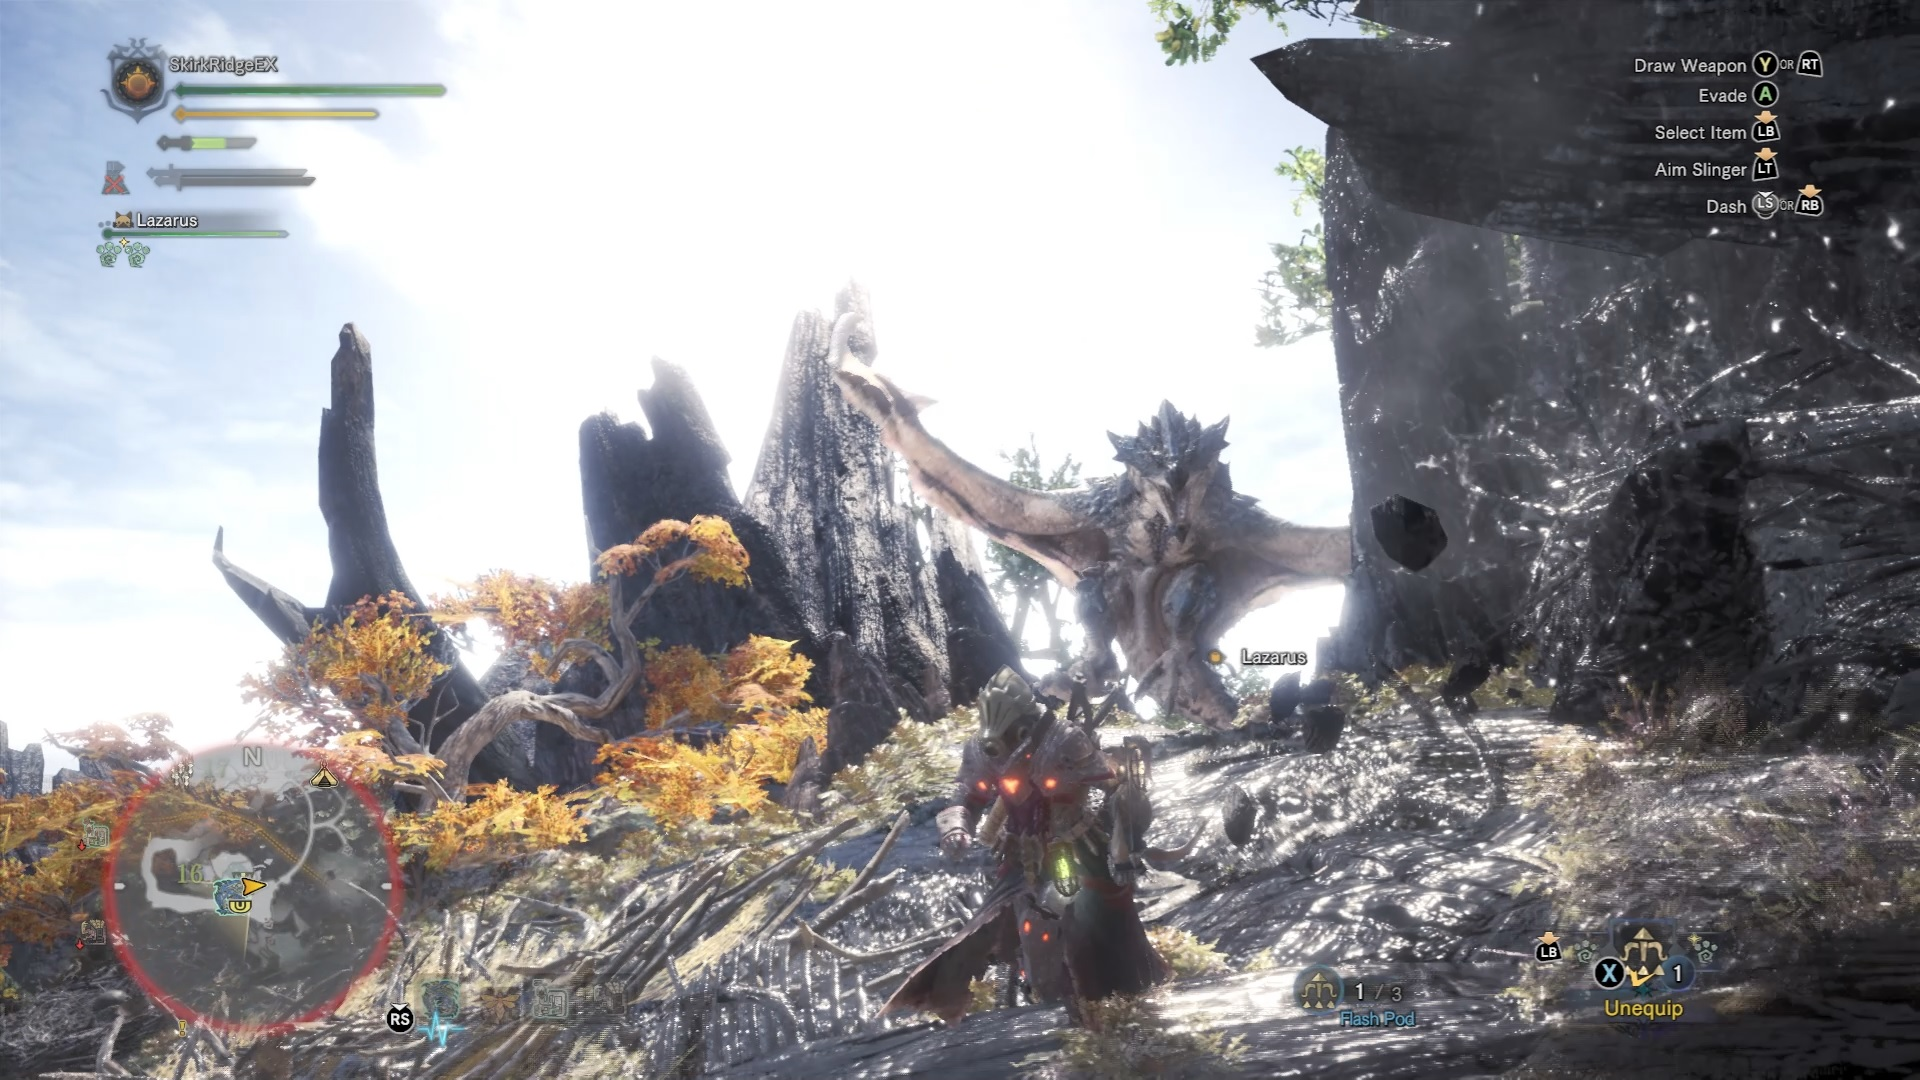 Hunter is about to fire a flash pod at the Azure Rathalos, which is flying close to the waterfall sealed by the cliff to the right.